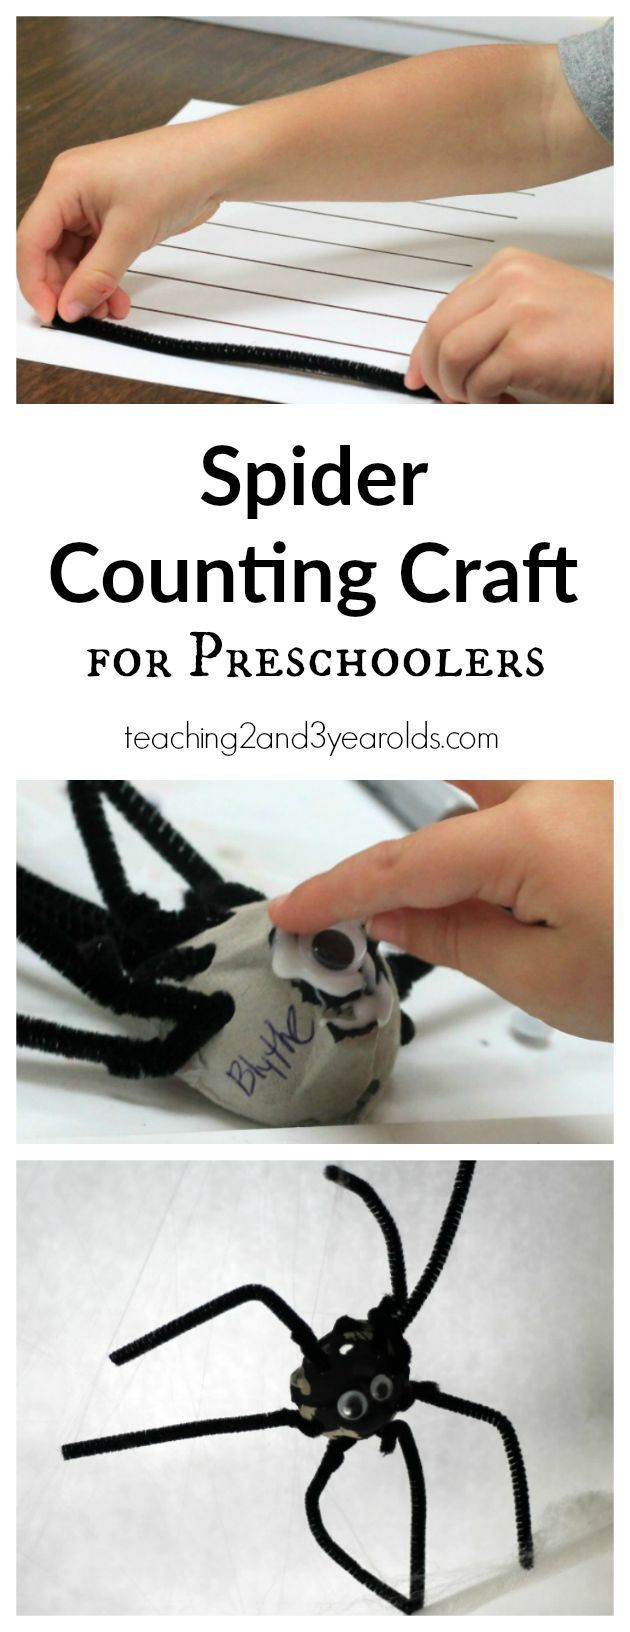 How to Easily Turn an Egg Carton into Spiders #creativeartsfor2-3yearolds